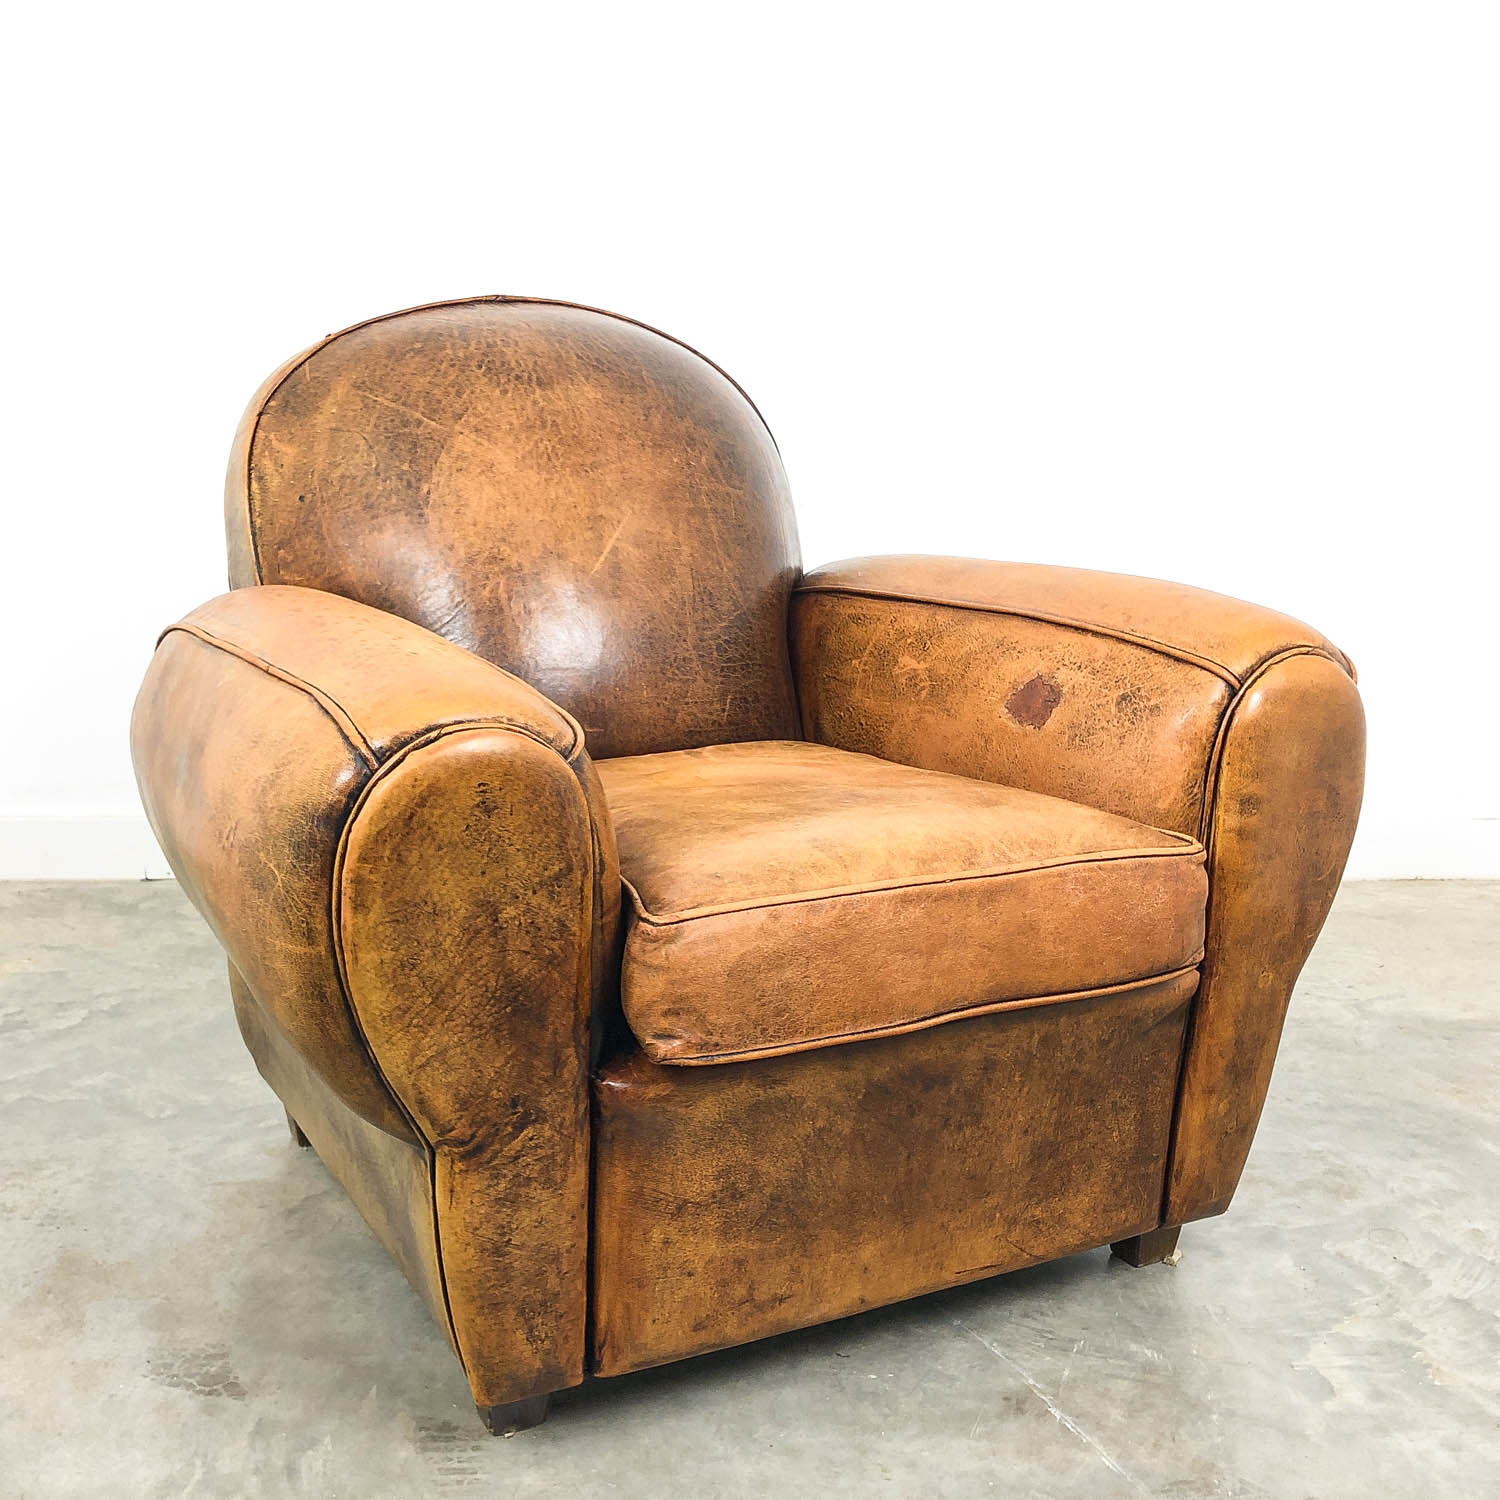 French art deco sheep leather club chair